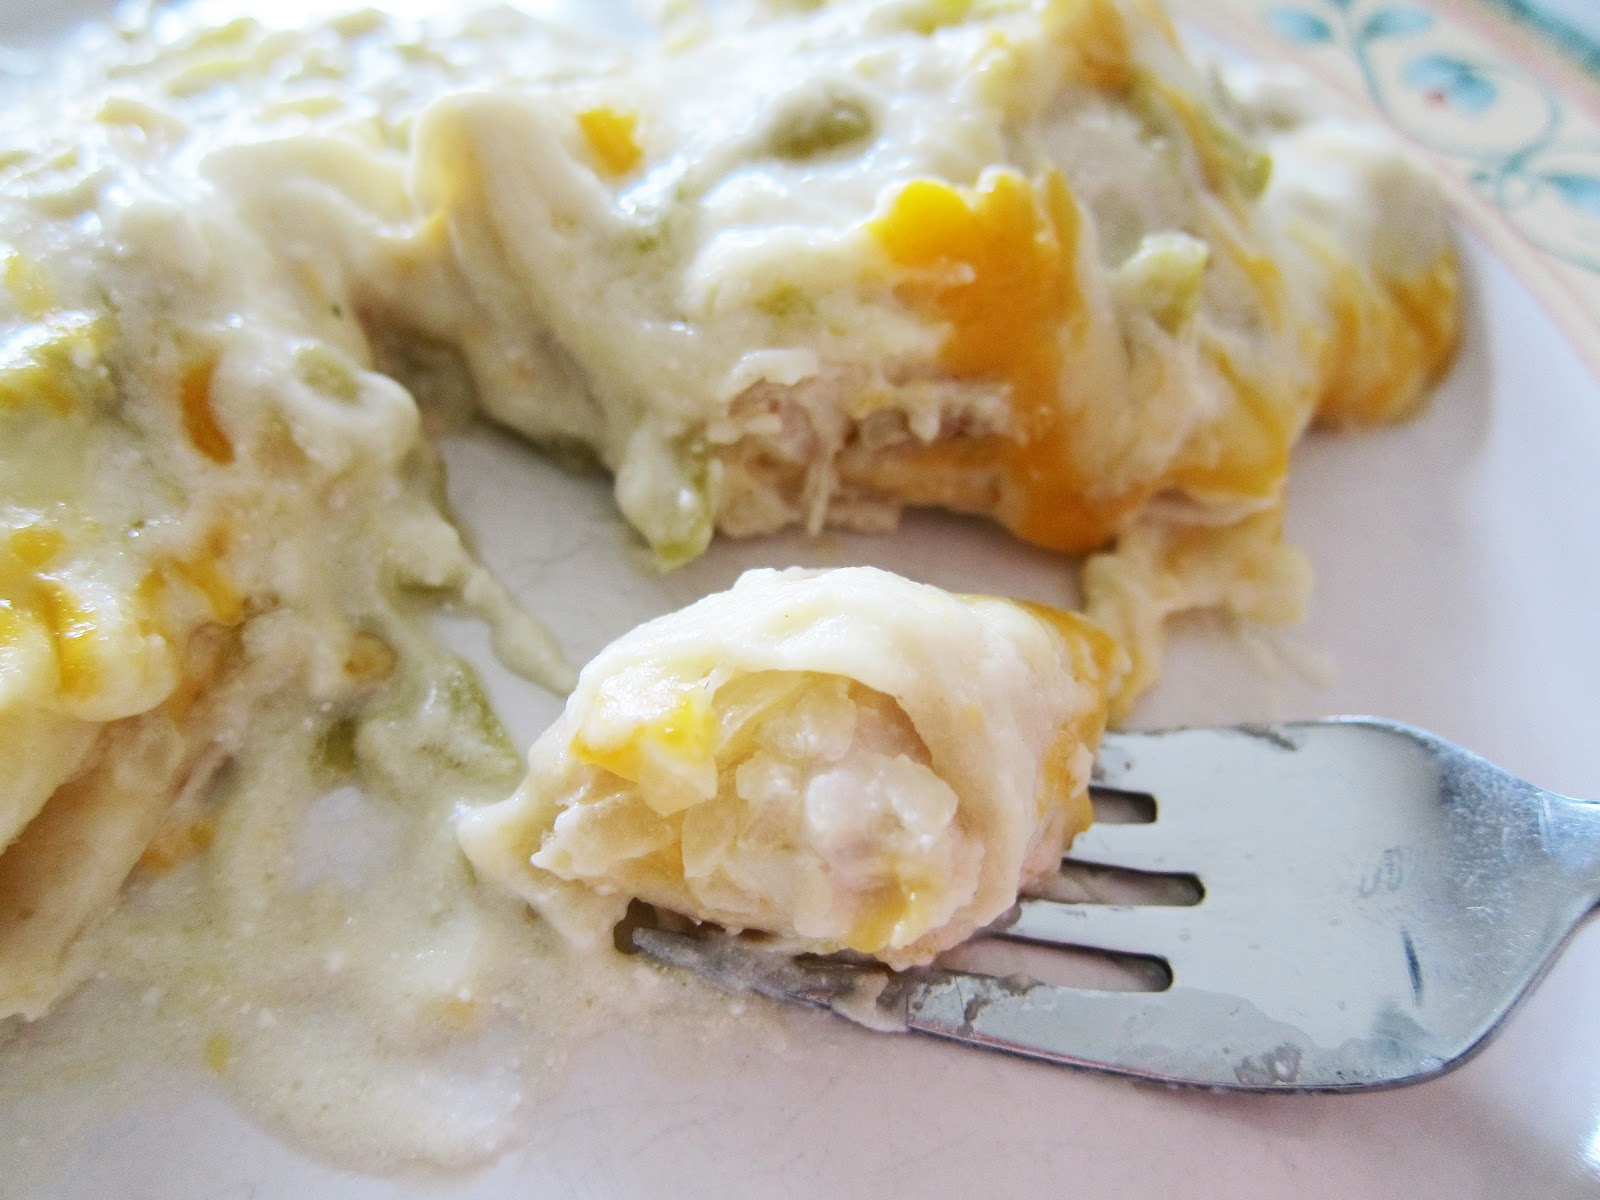 ... enchiladas because when i google images of enchiladas most of them